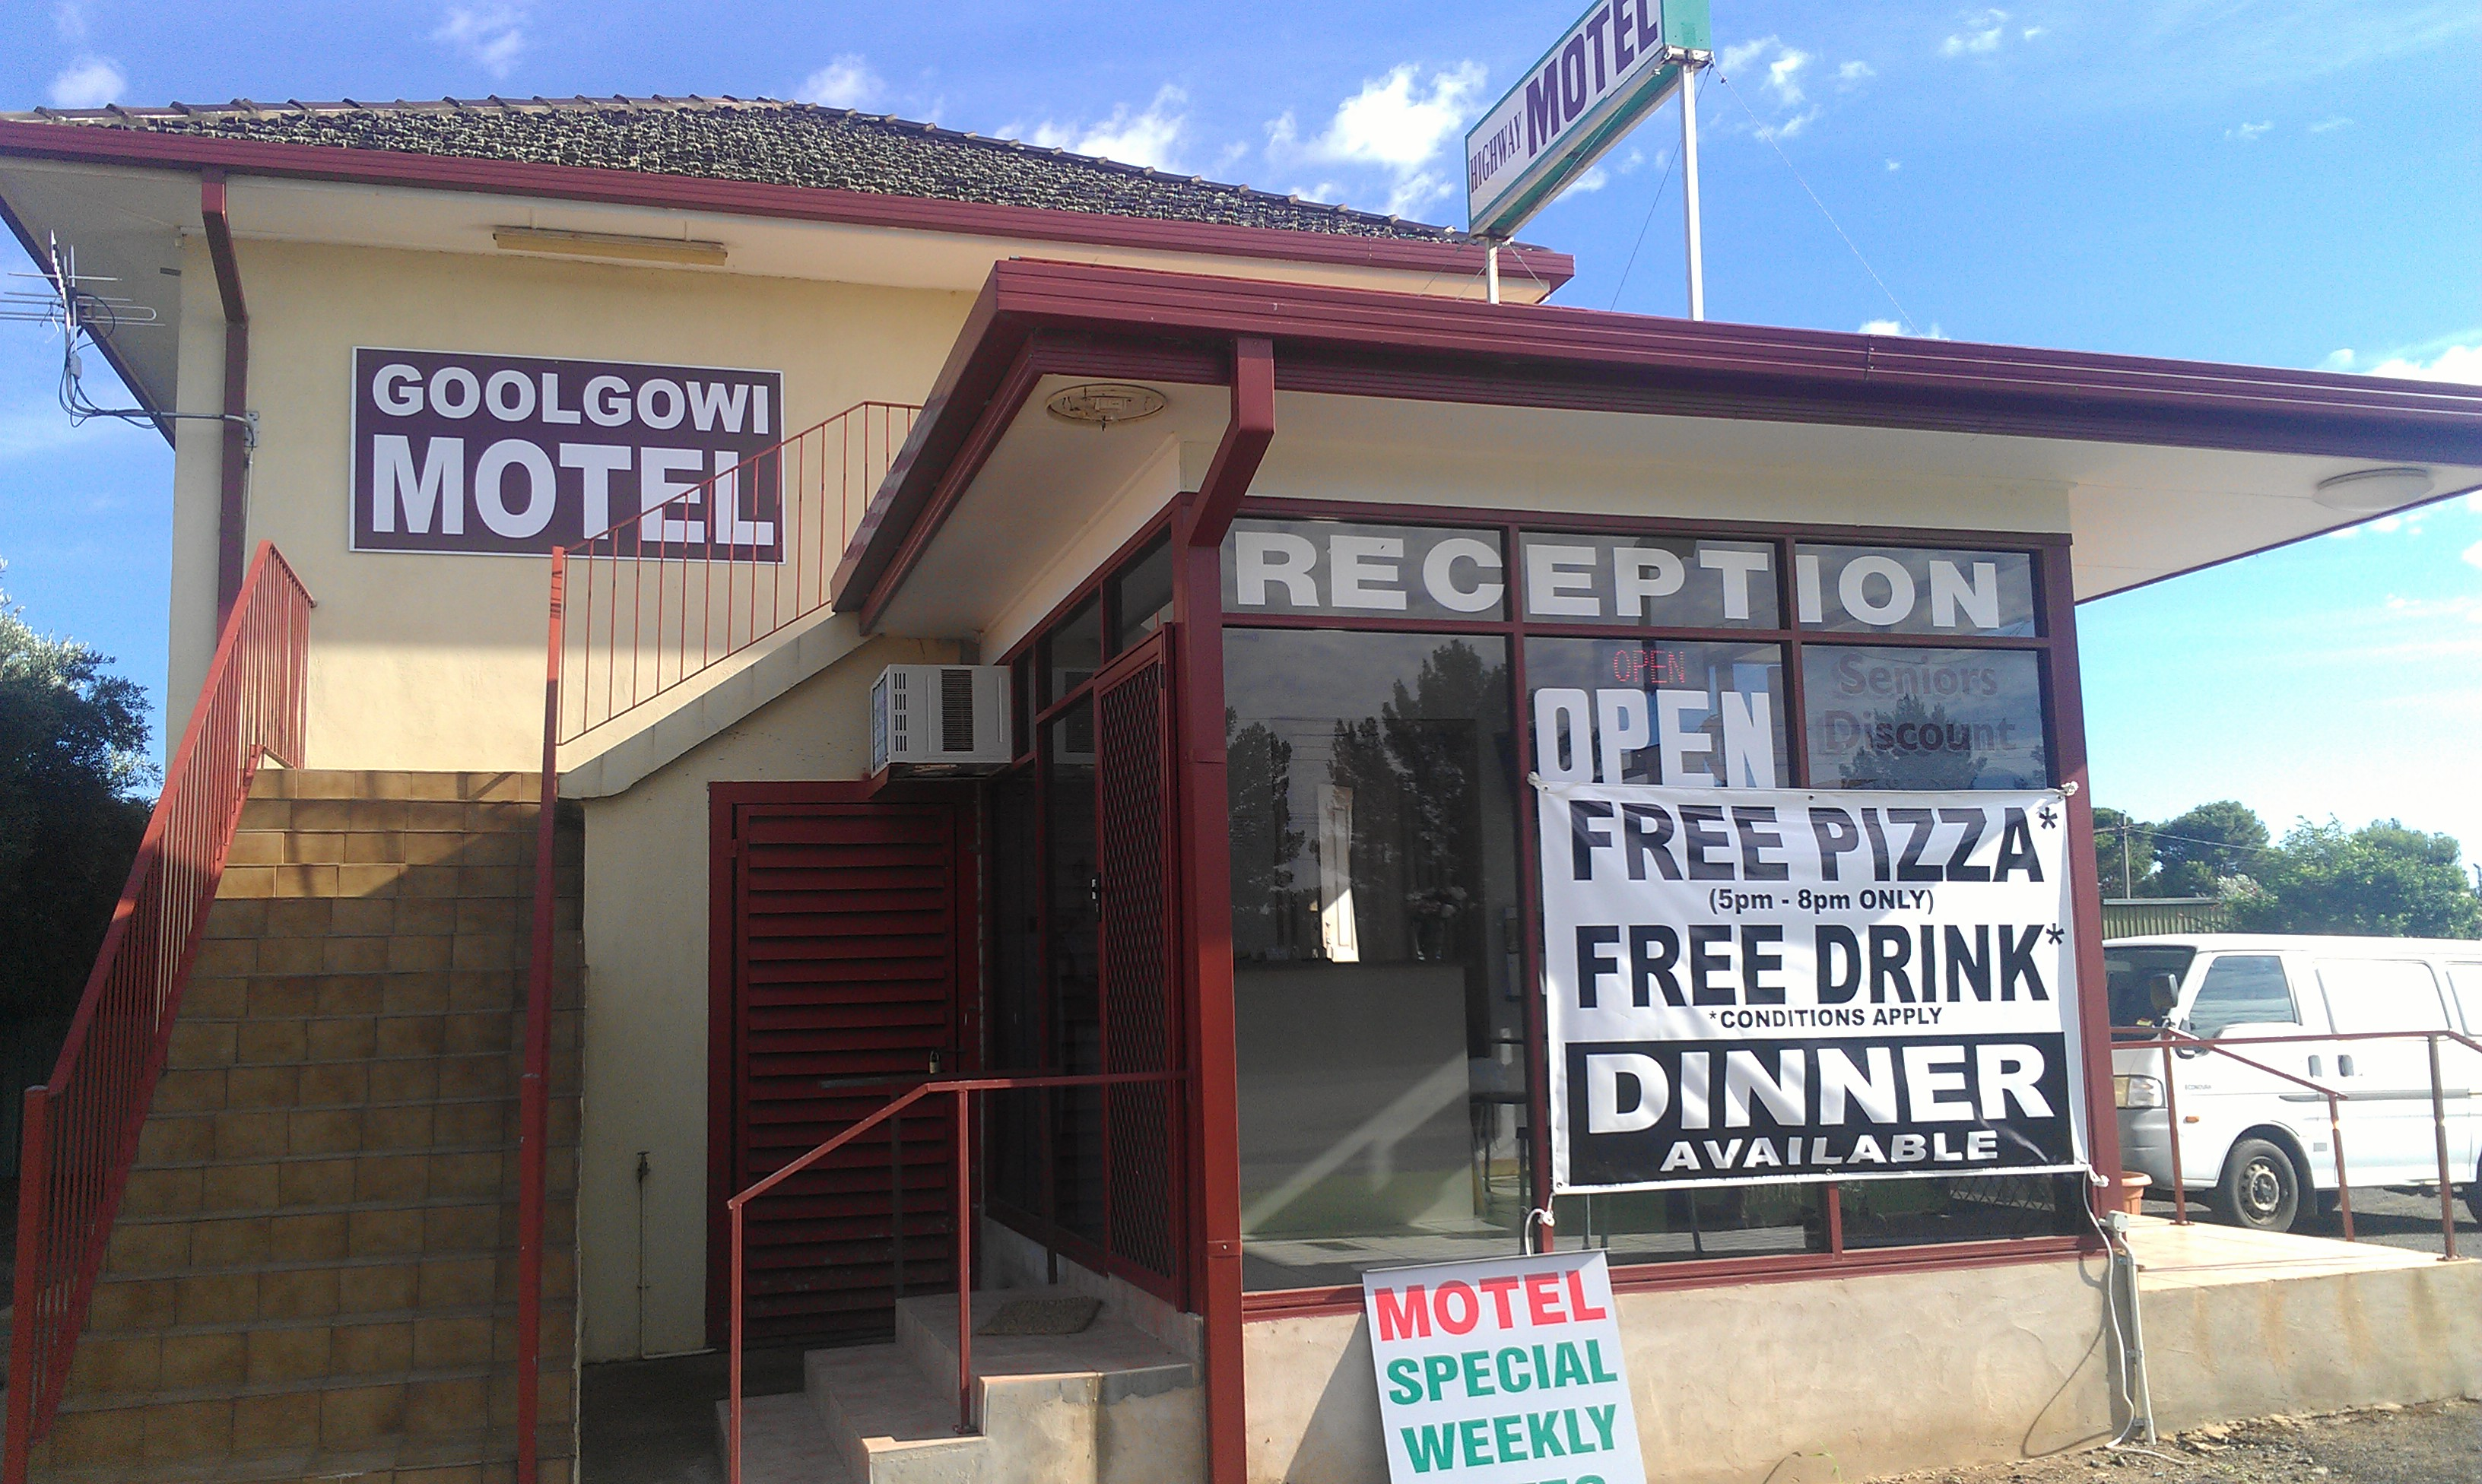 Royal Mail Hotel Goolgowi - Accommodation Yamba